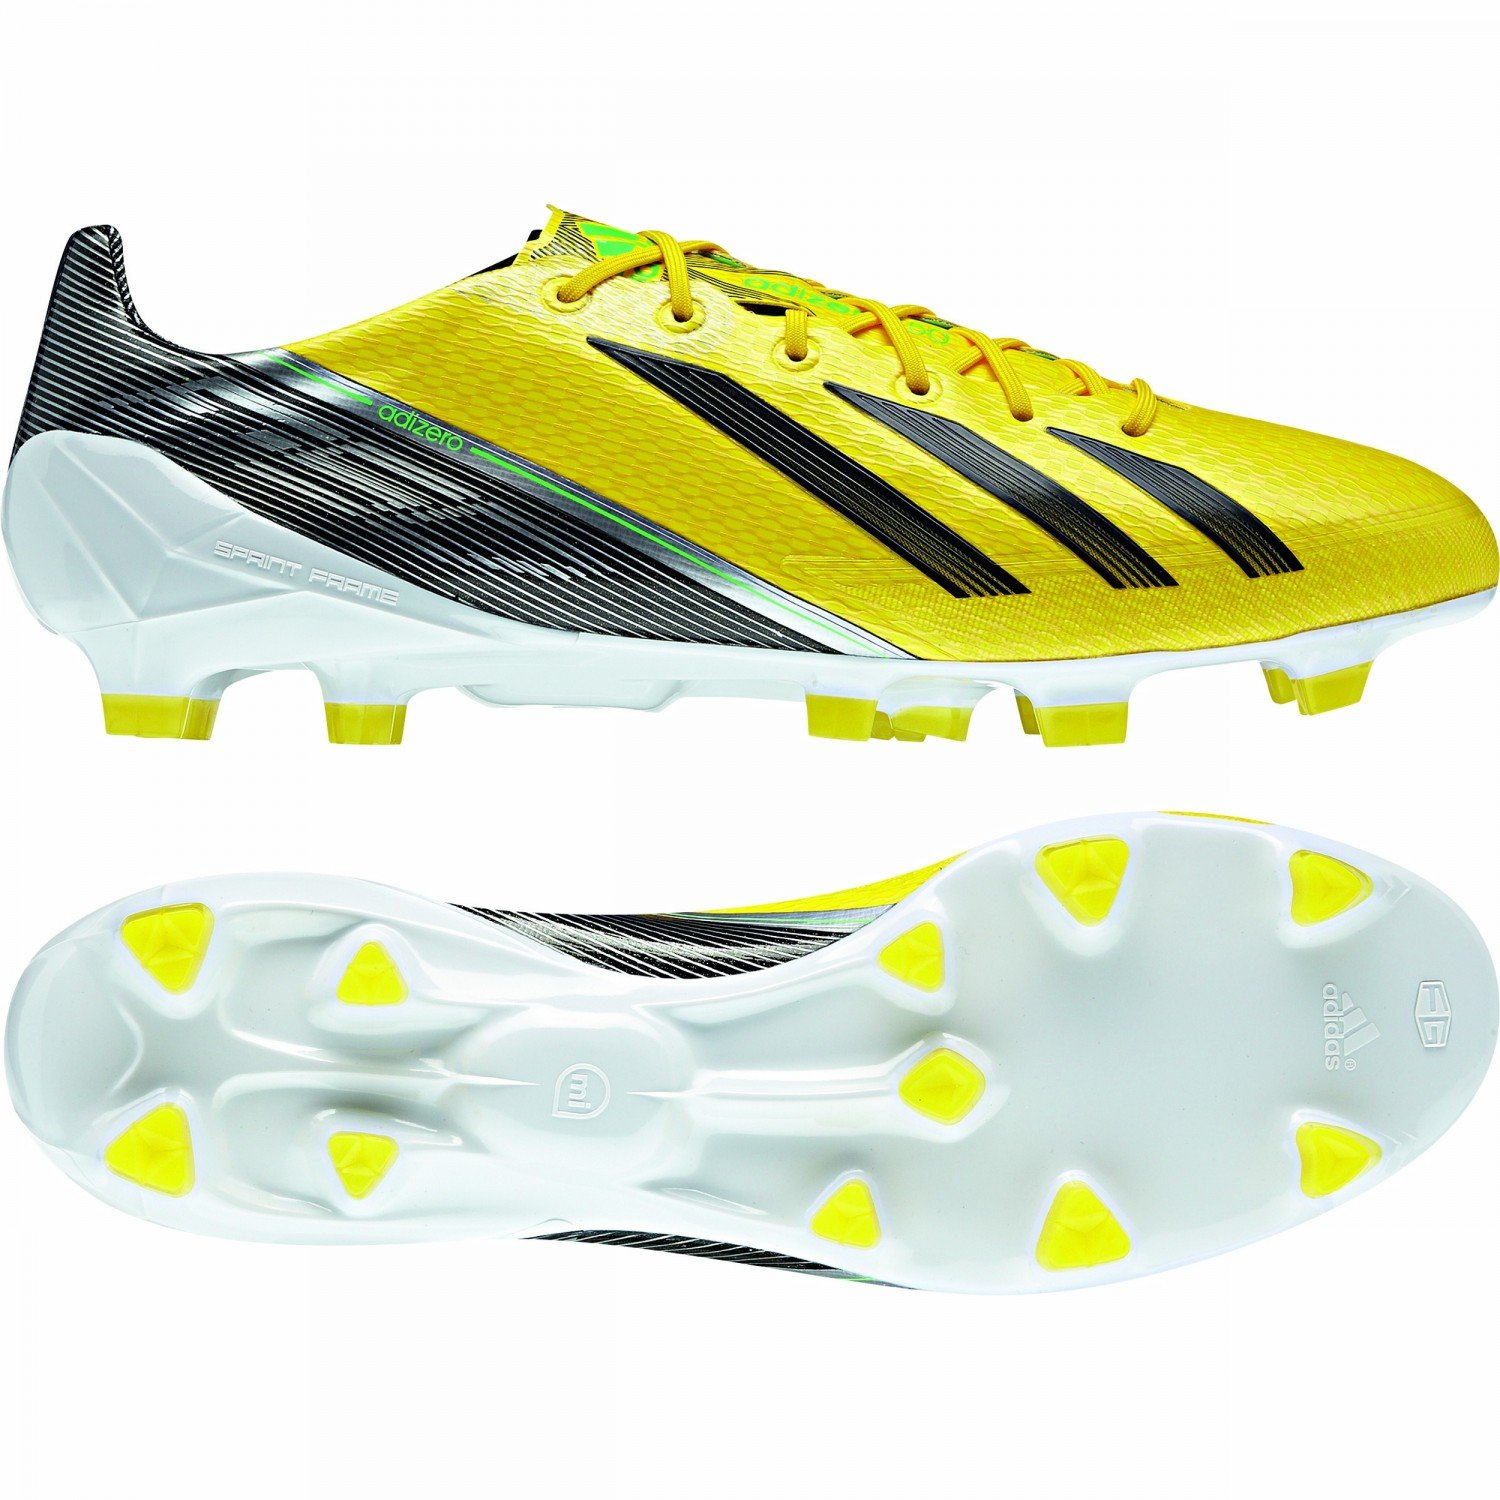 adidas Adizero F50 TRX FG Synthetic Soccer Cleats (Vivid Yellow, Black, Green Zest) adidas performance men s predito instinct fg soccer shoe